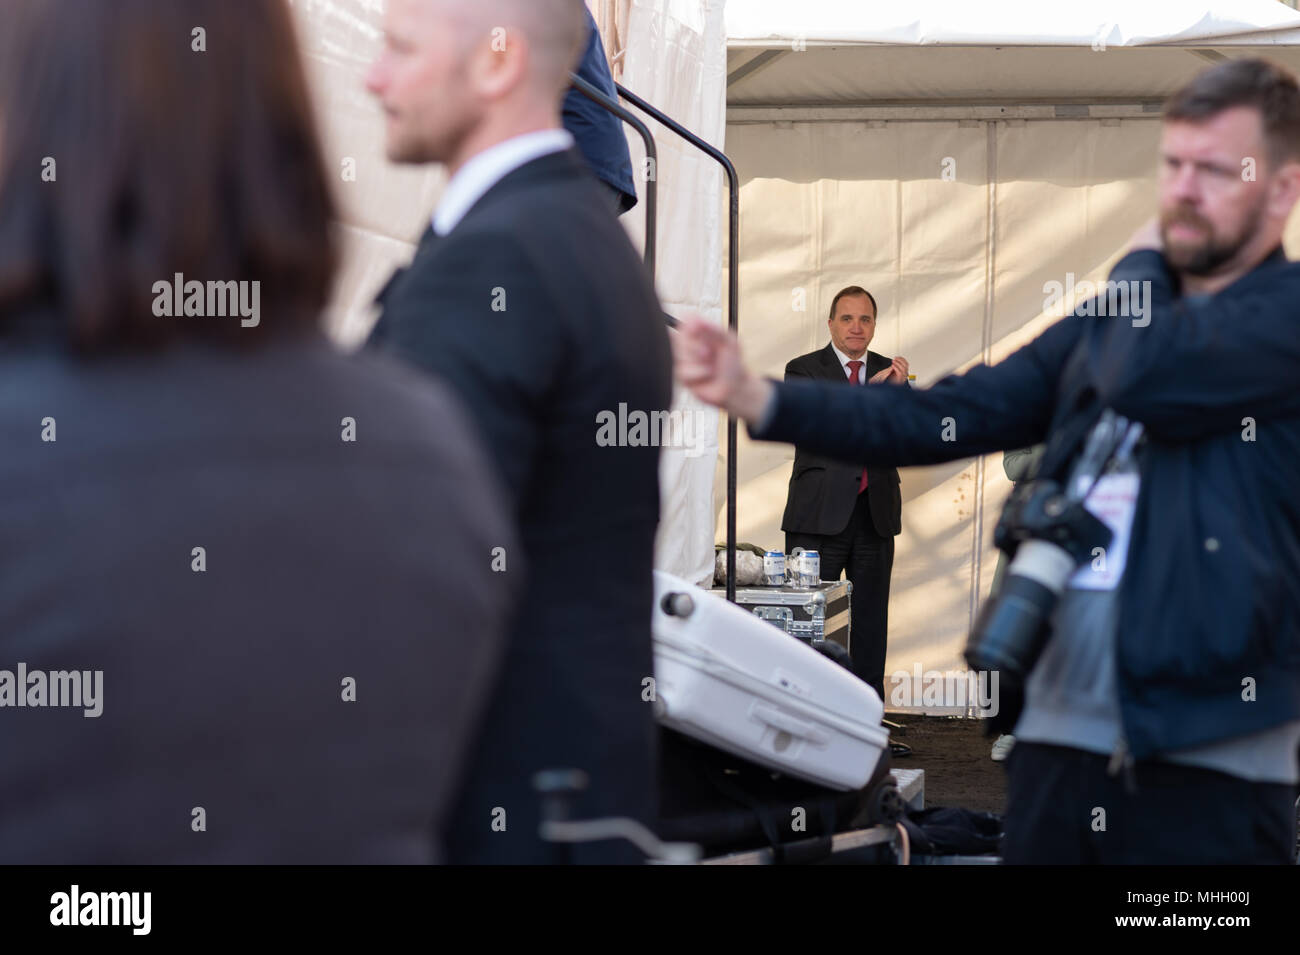 Stockholm, Sweden, 1st May, 2018. First May demonstration in Stockholm. PM Stefan Lofvén. Credit: Barbro Bergfeldt/Alamy Live News - Stock Image